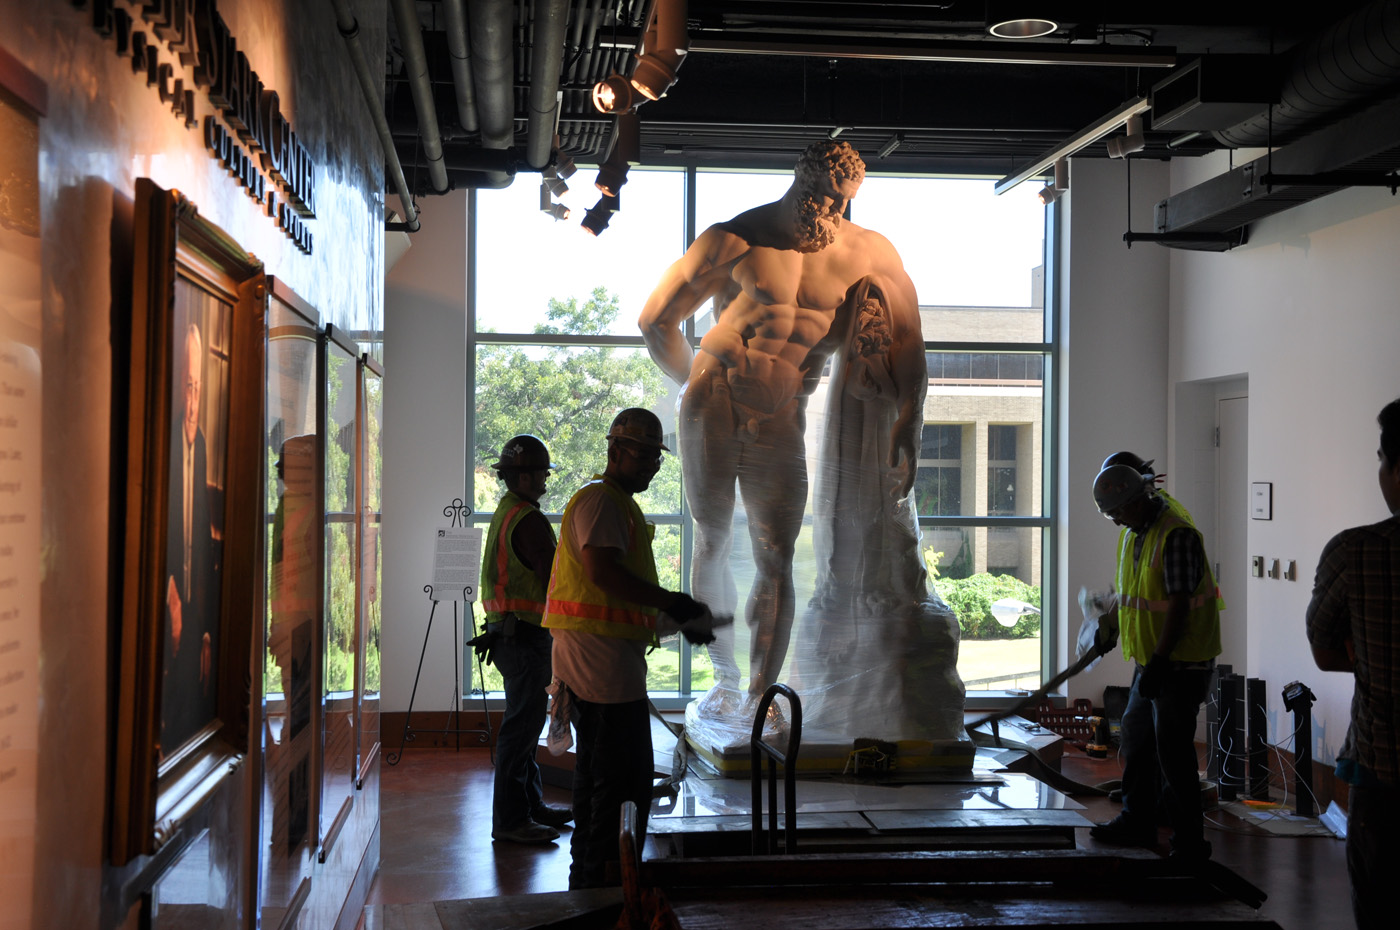 Front view of the statue of the Farnese Hercules wrapped and being moved, while four men work on it, in the main lobby.